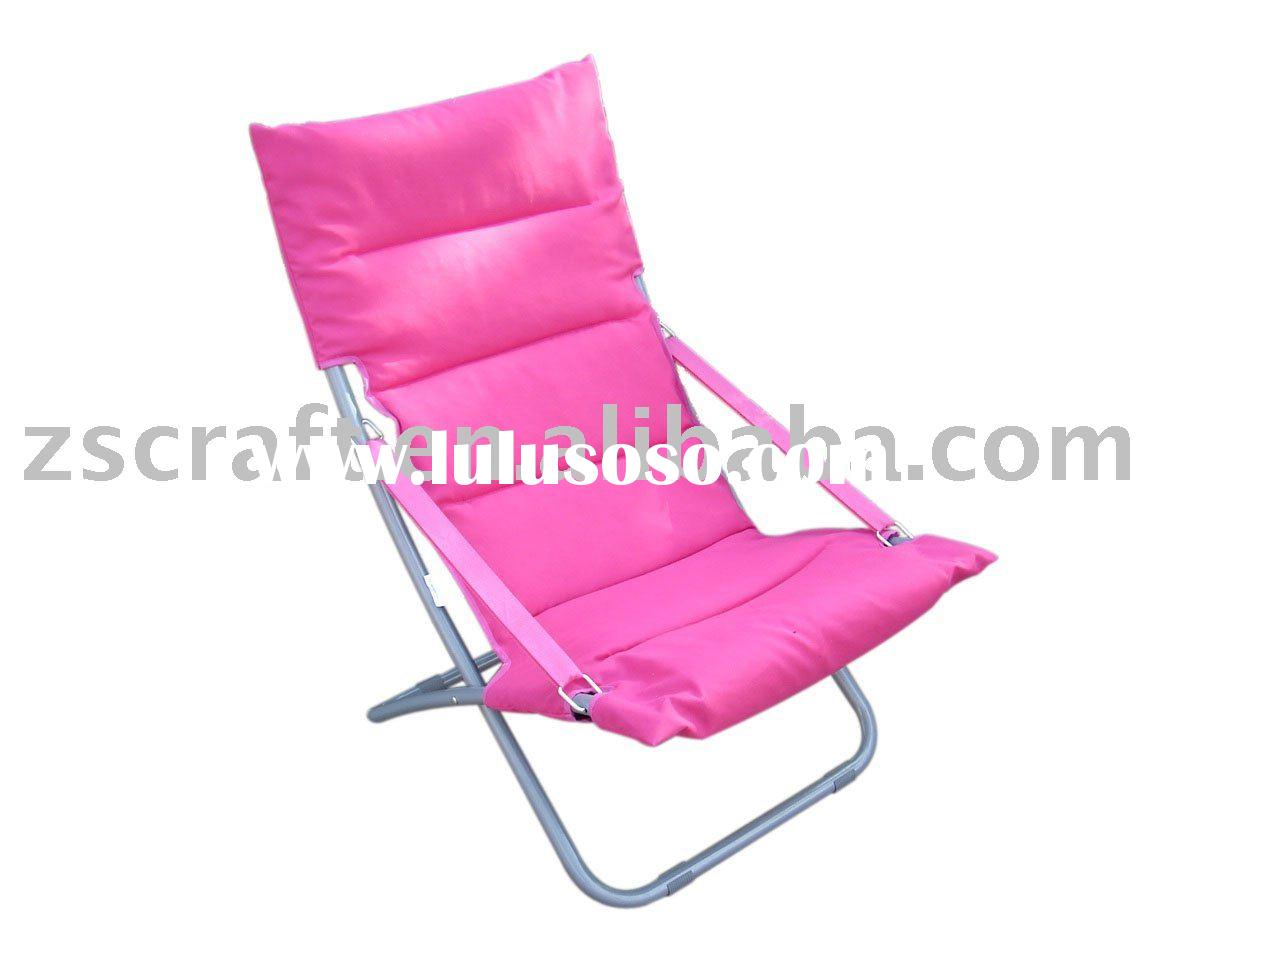 Folding Lounge Beach Chair Lightweight Folding Beach Lounge Chair For Sale Price